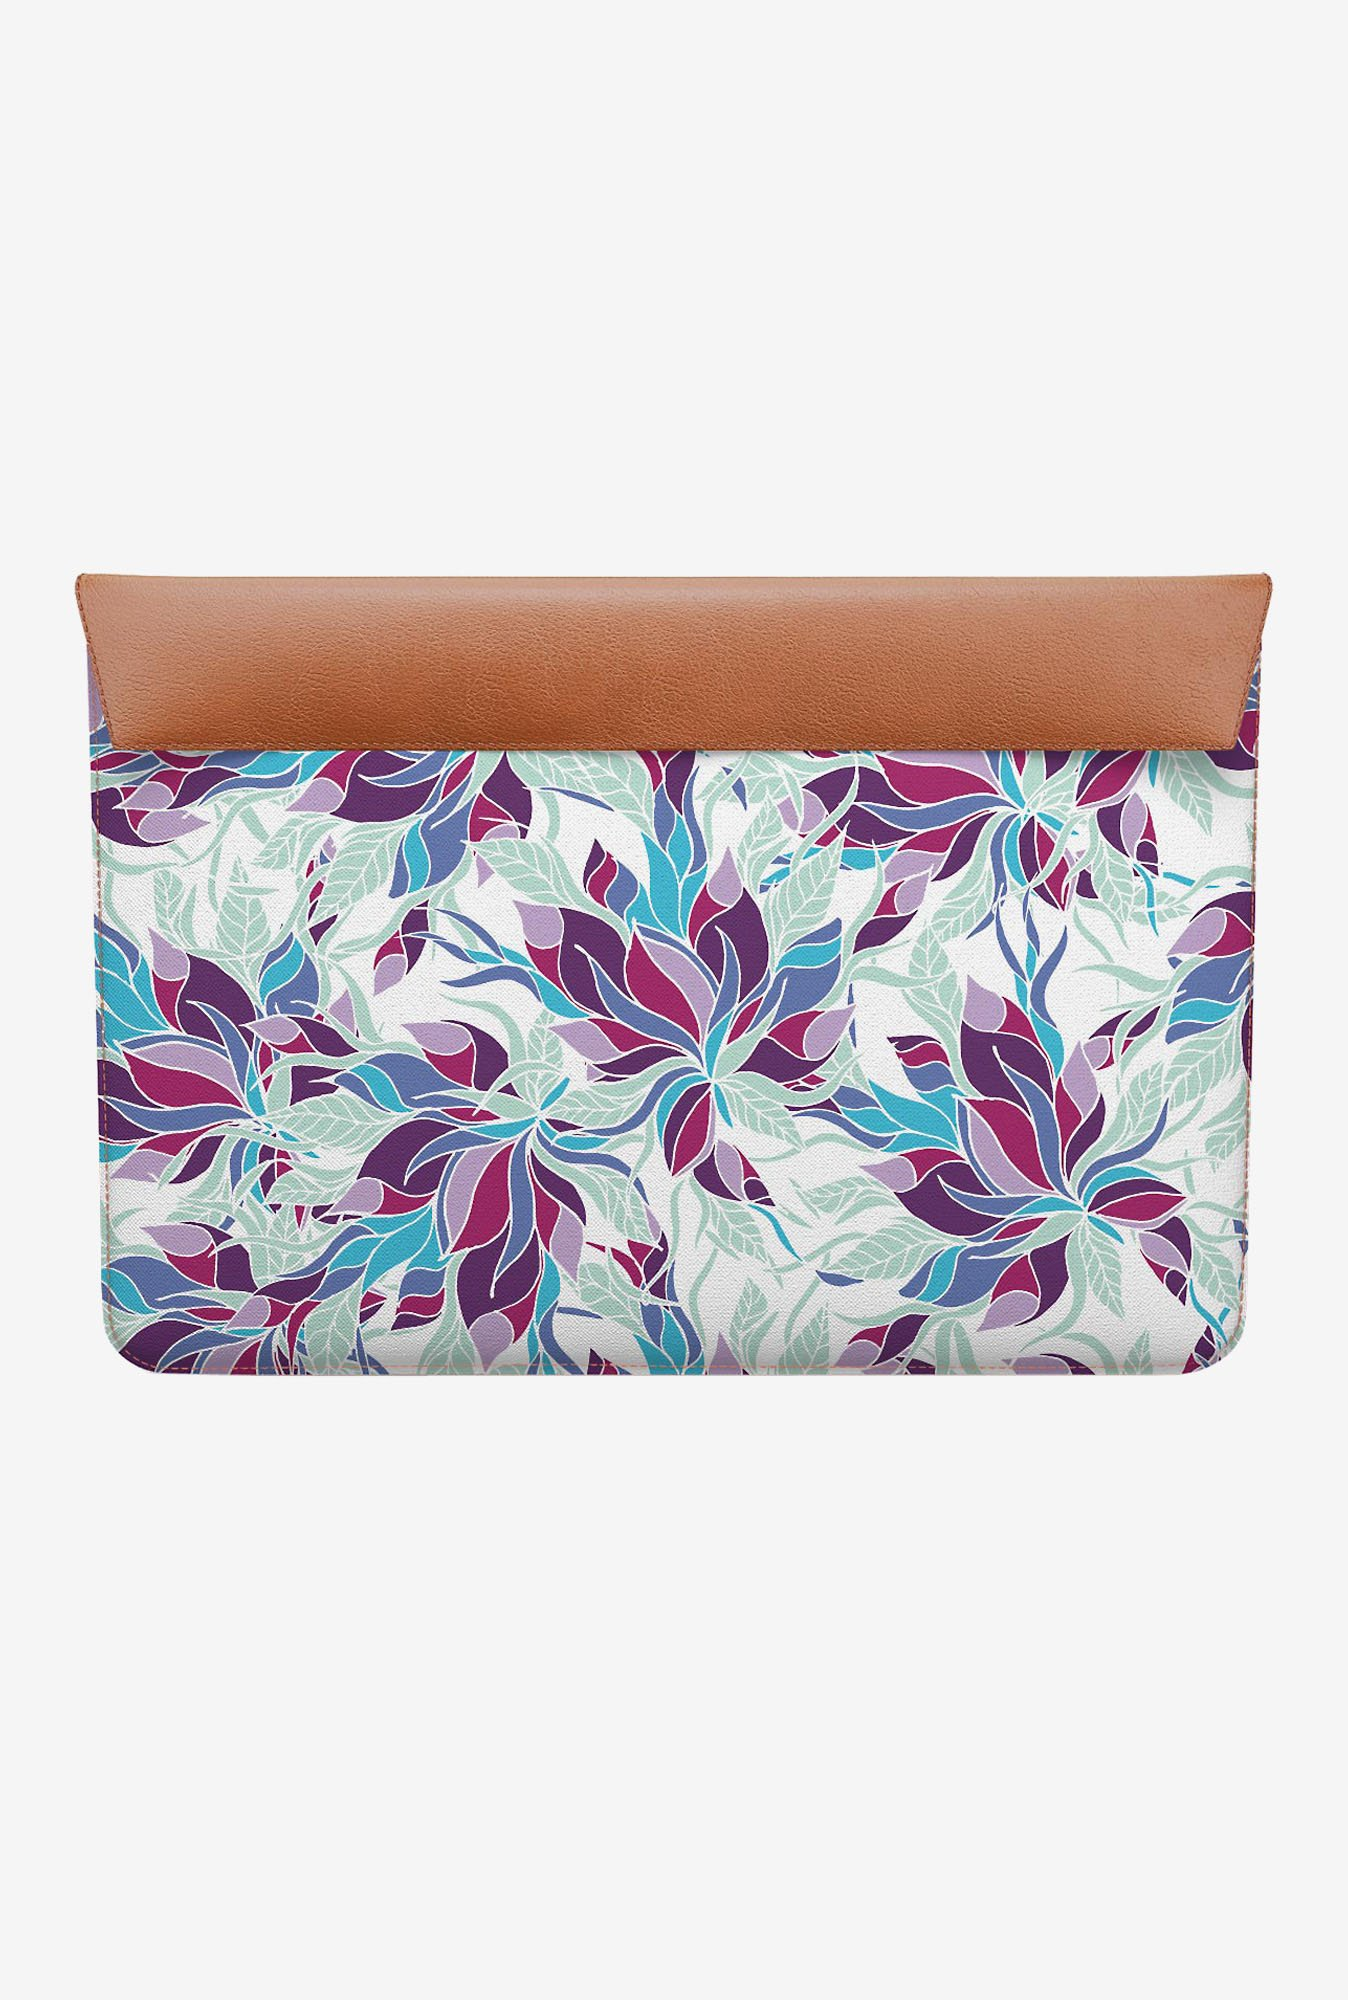 DailyObjects Fall Floral MacBook Pro 15 Envelope Sleeve